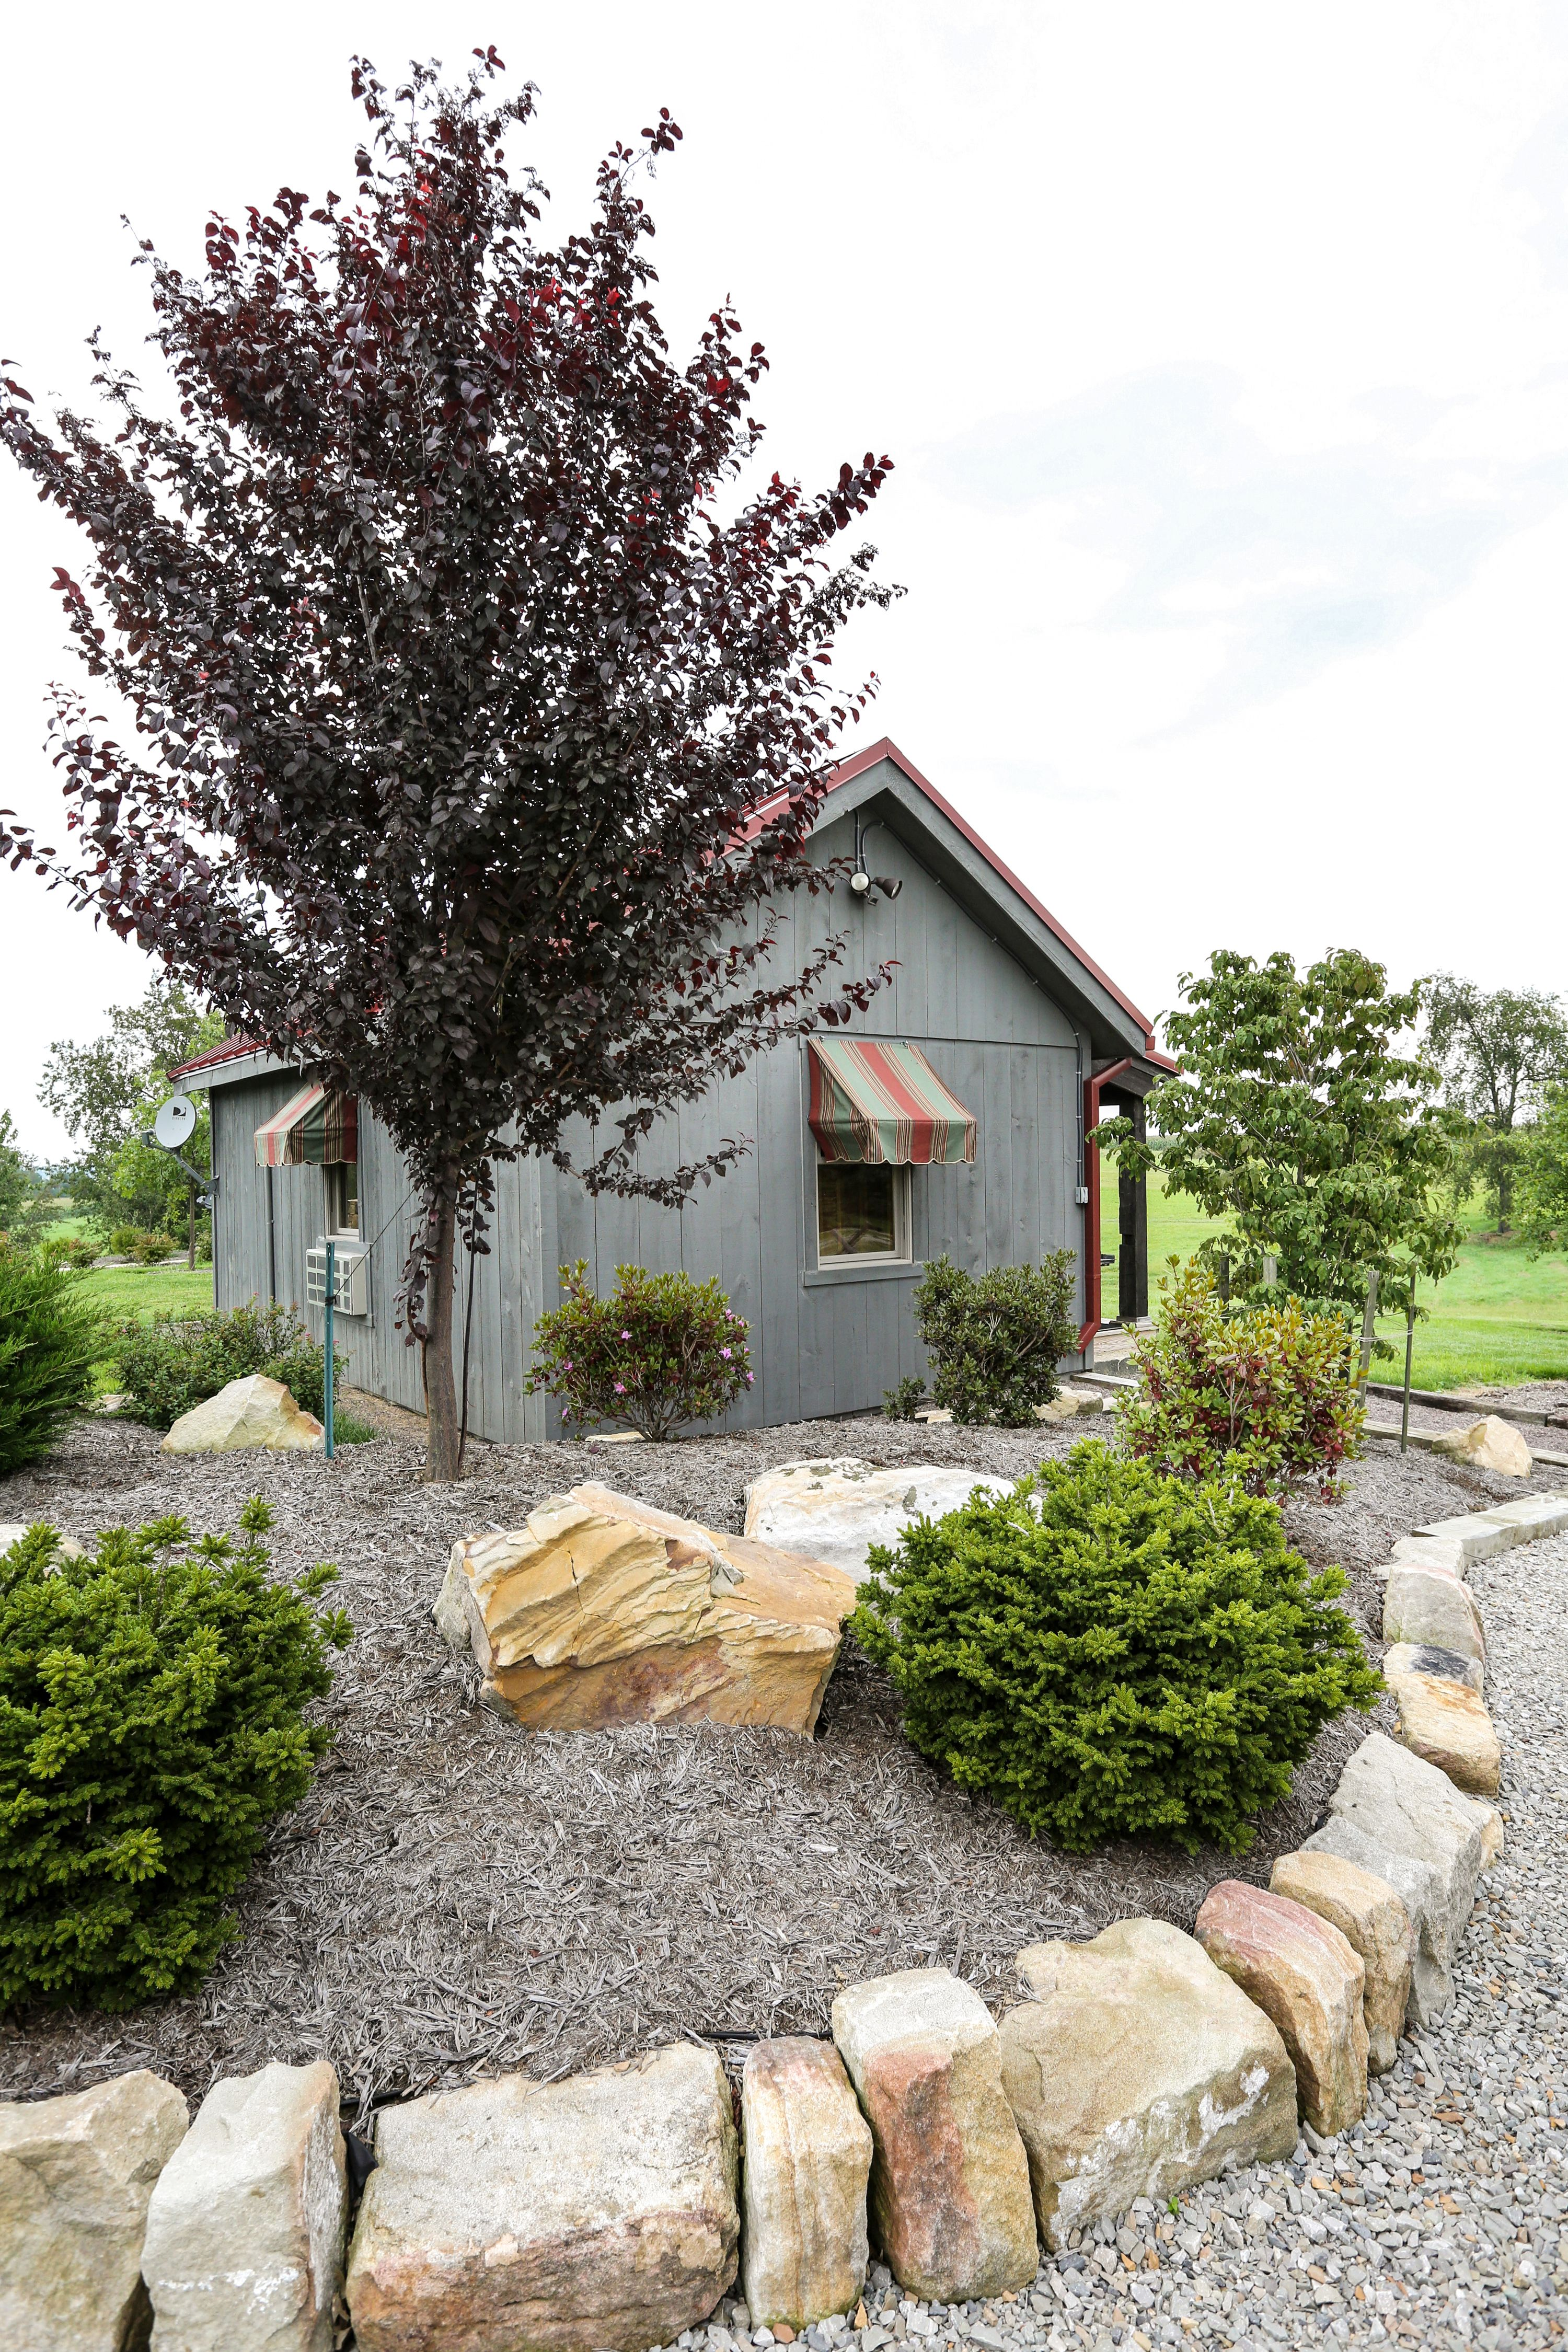 Relax in a cozy cottage on 45 acres of secluded landscaped